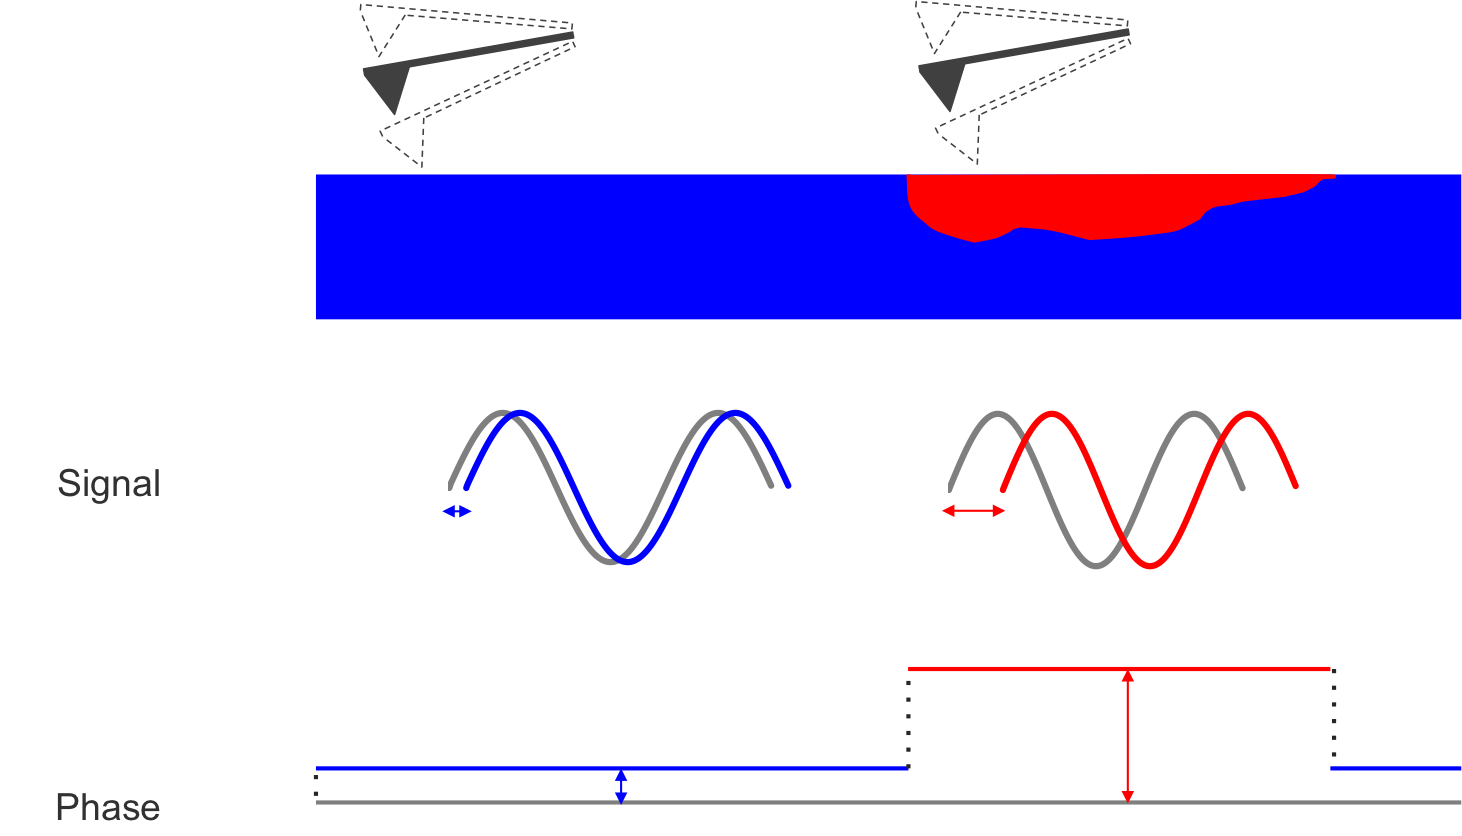 The red and blue components possess different mechanical properties, which results in a different phase shift.